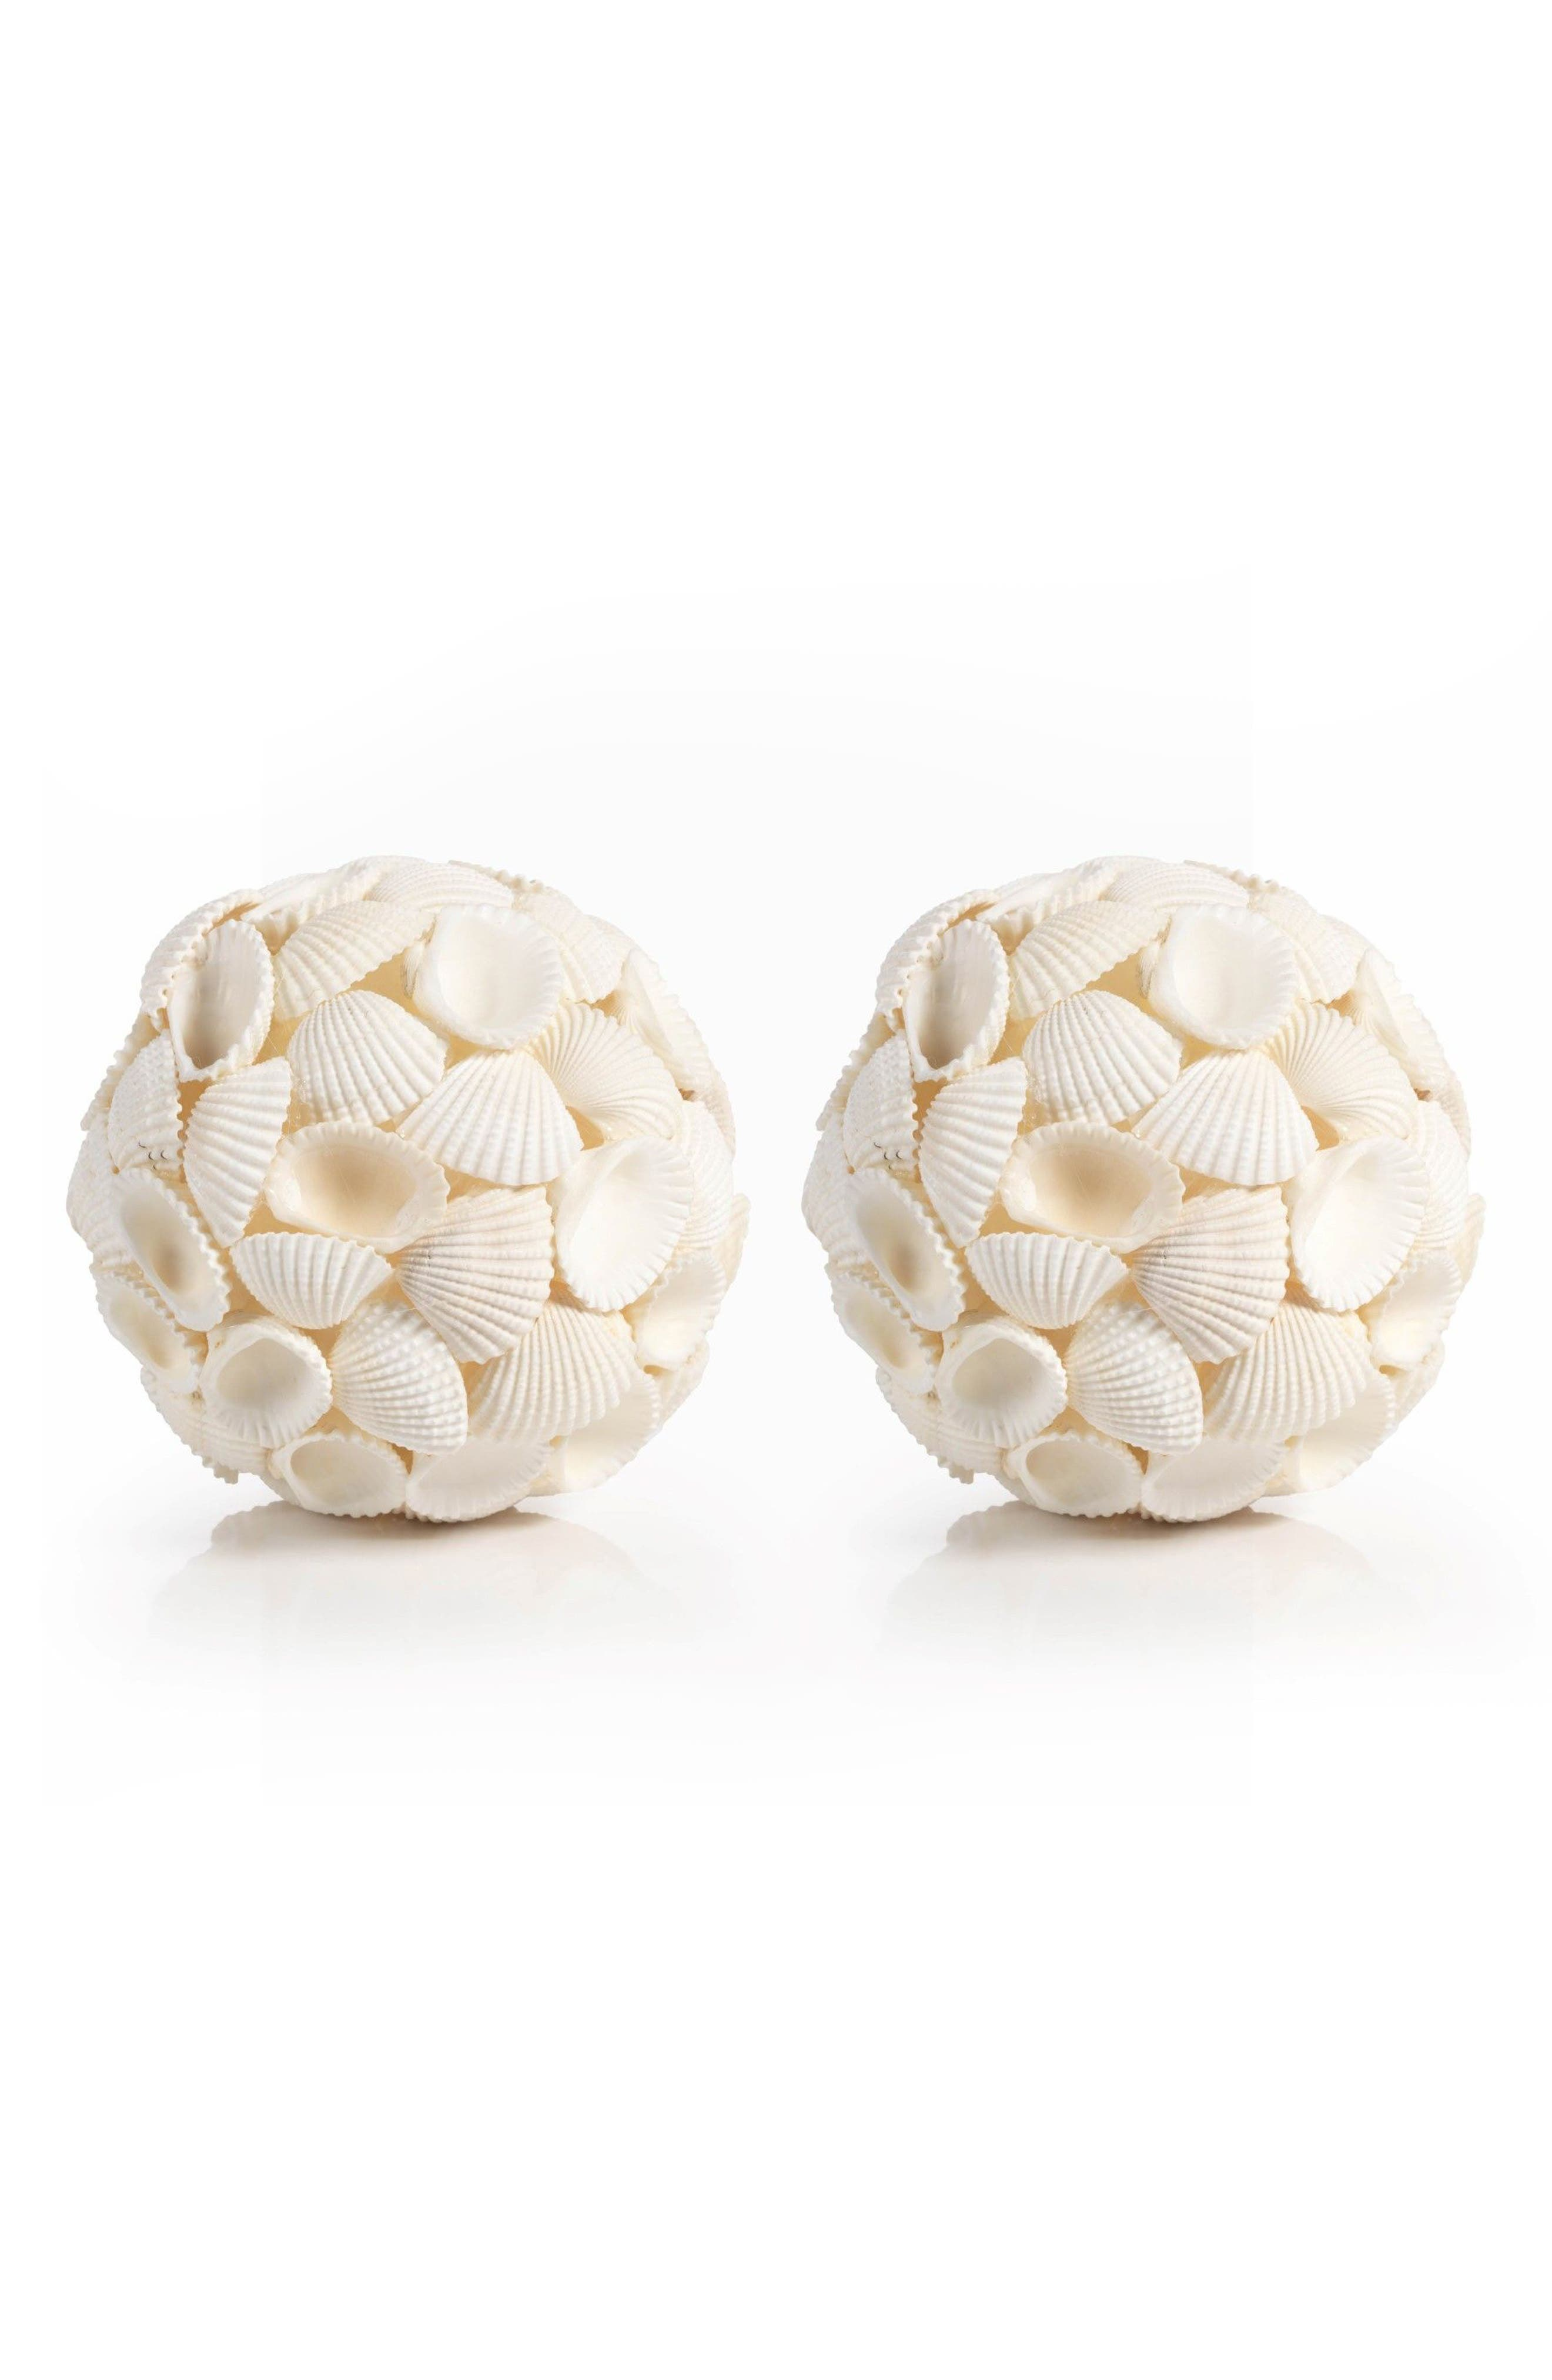 Main Image - Zodax Boracay Set of 2 Shell Decorations